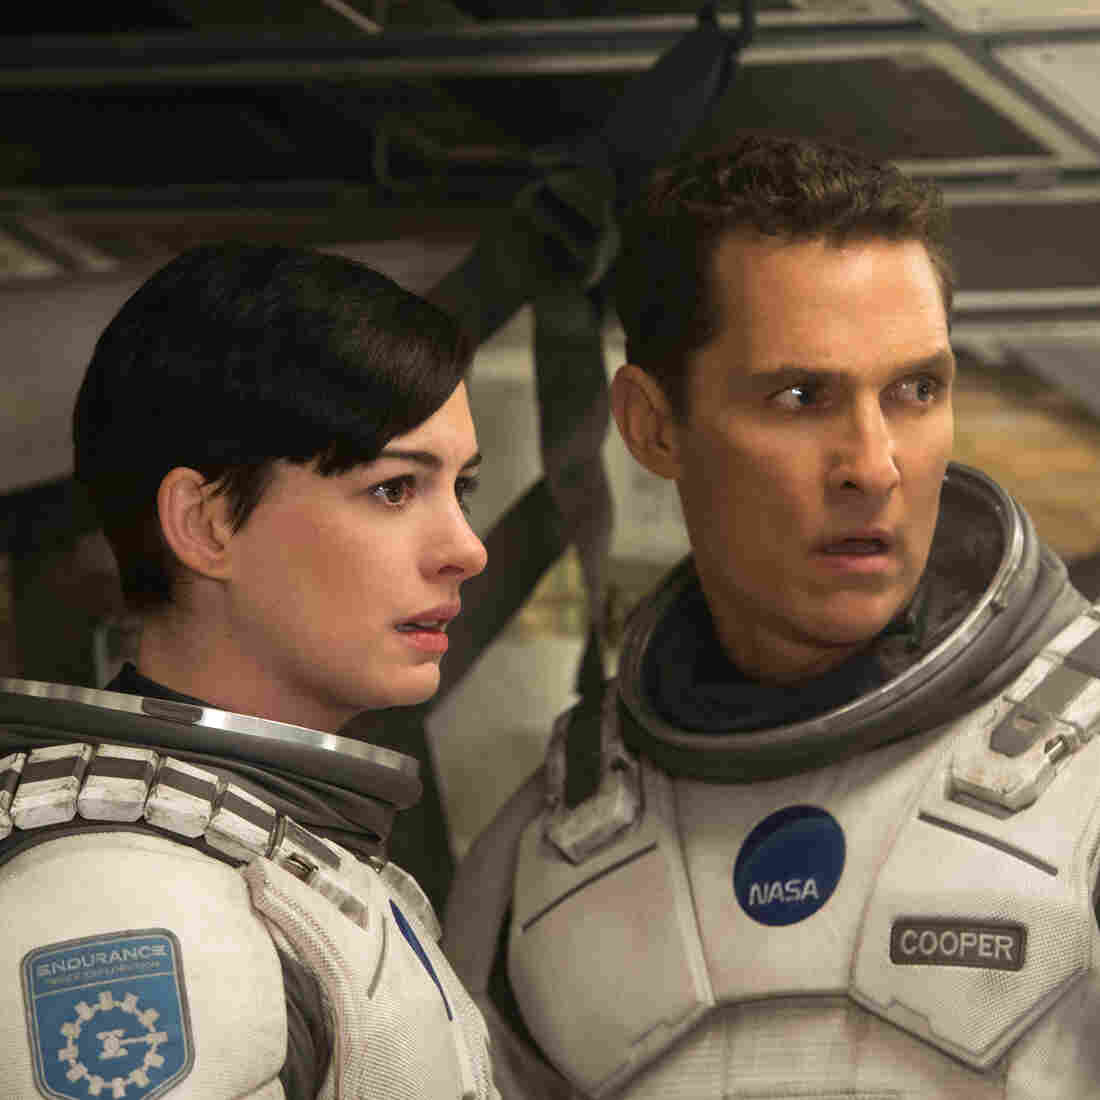 In Interstellar, Matthew McConaughey and Anne Hathaway are part of a team of explorers who have identified several potentially habitable planets accessible via wormhole.